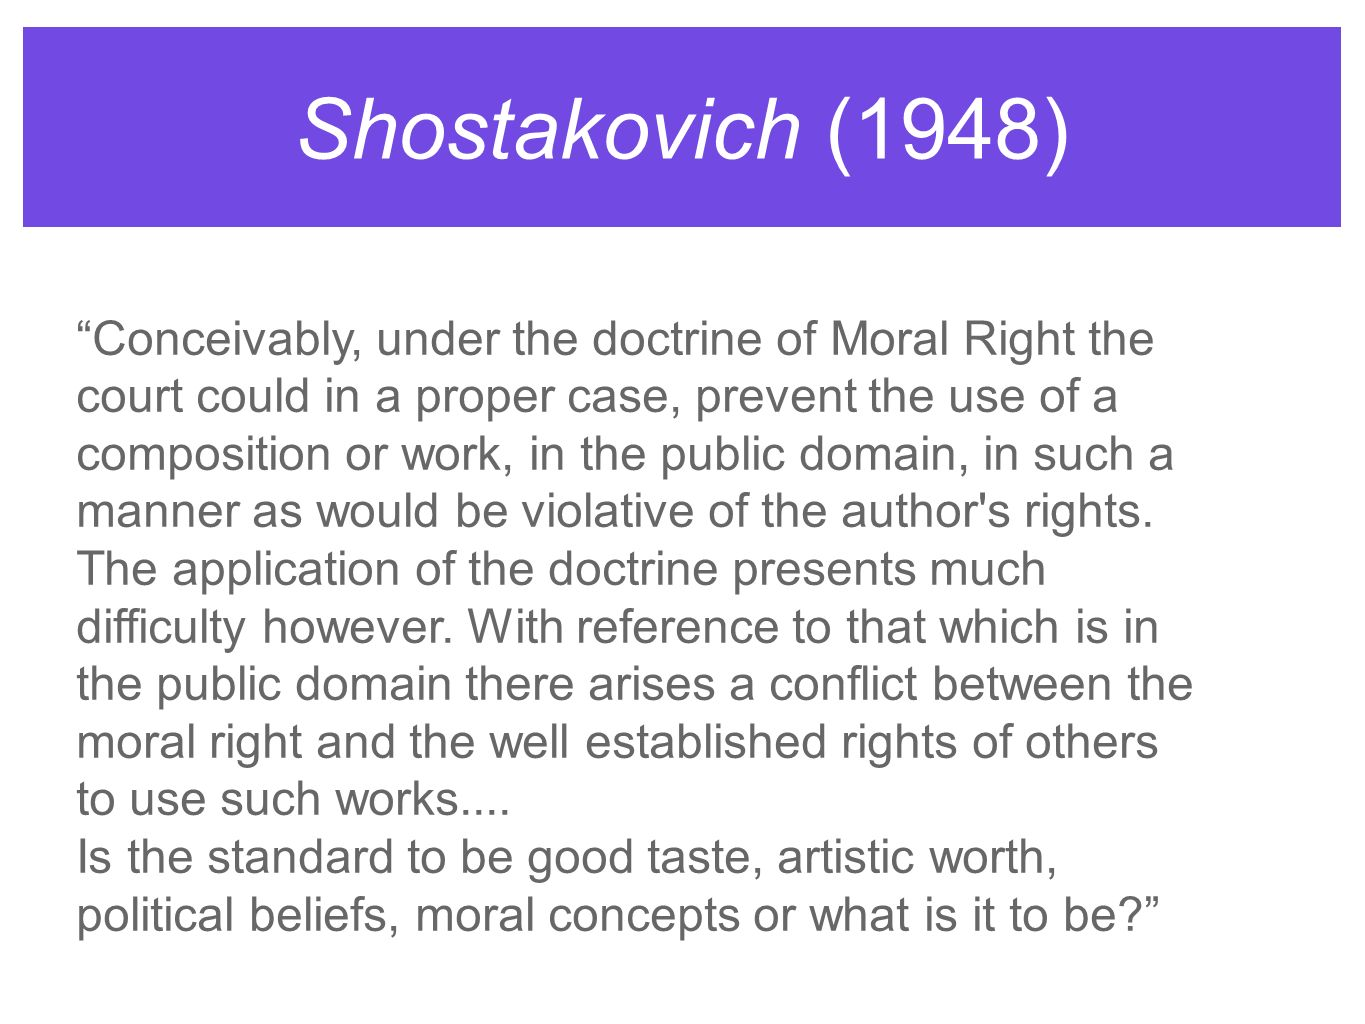 Shostakovich (1948) Conceivably, under the doctrine of Moral Right the court could in a proper case, prevent the use of a composition or work, in the